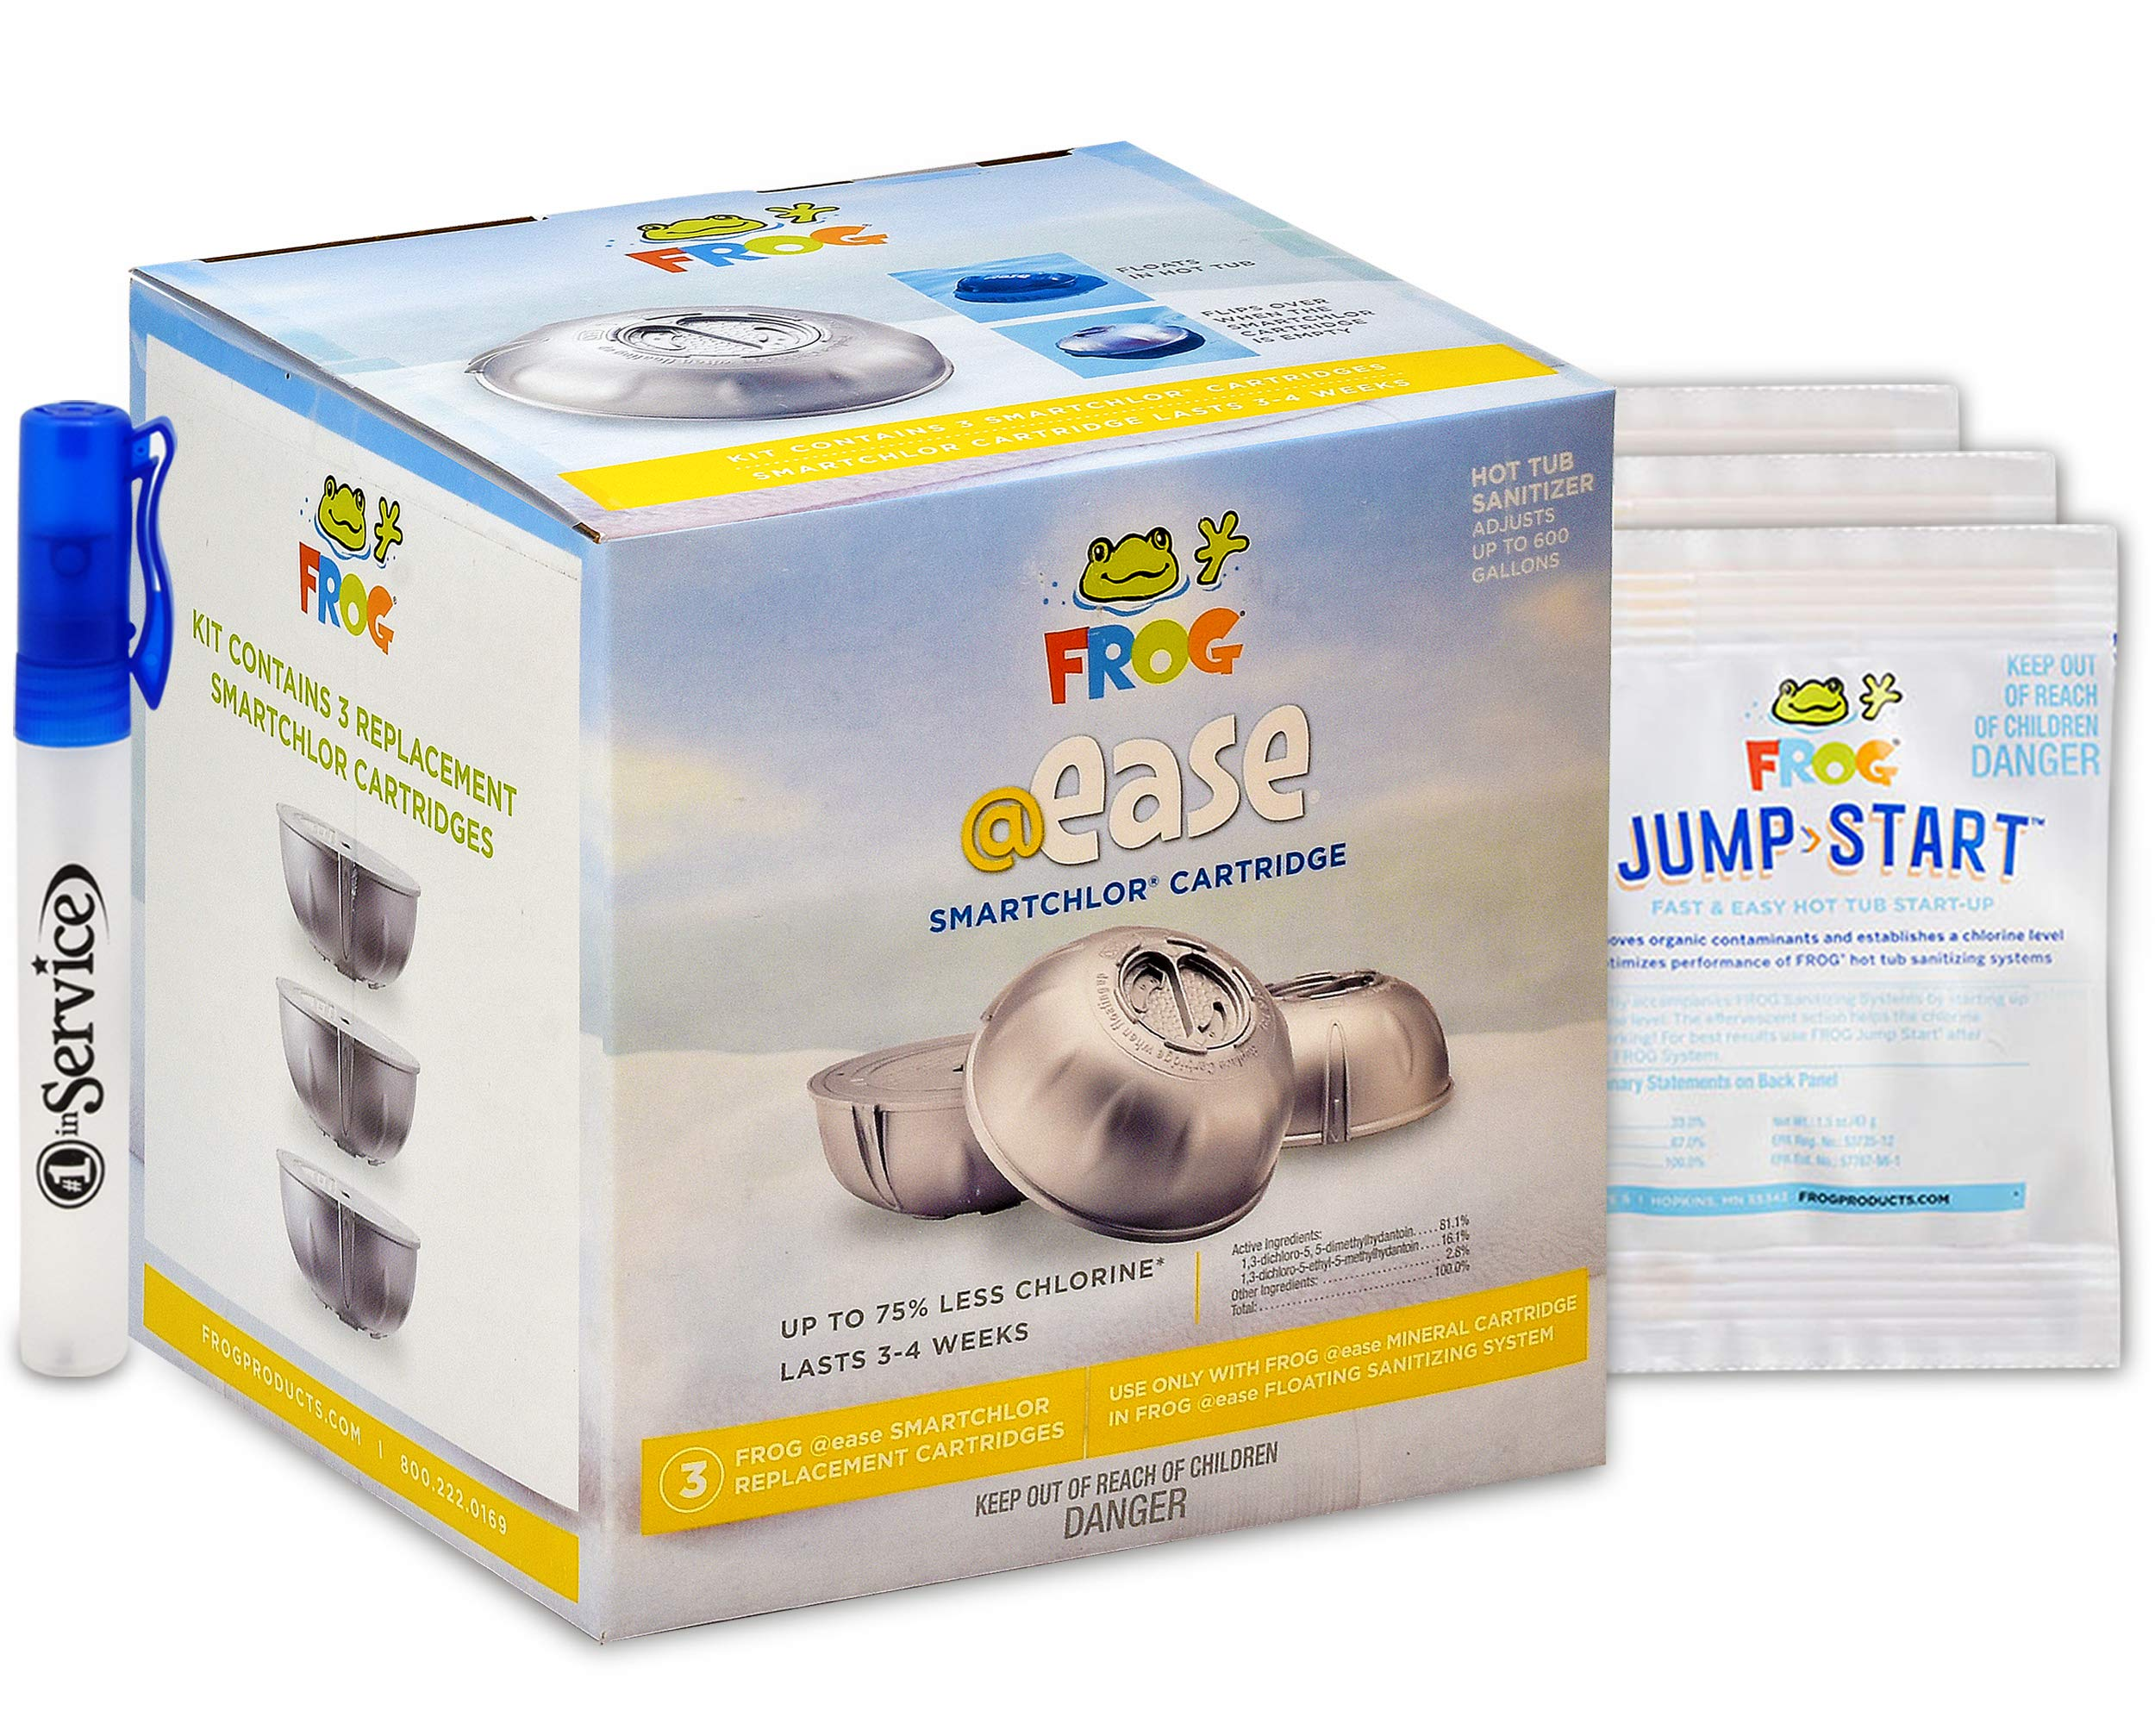 Frog @Ease Smartchlor Cartridges 3 Pack, 3 Jump Start Packets for Spa Hot Tubs and Hand Sanitizer Included by SPA FROG